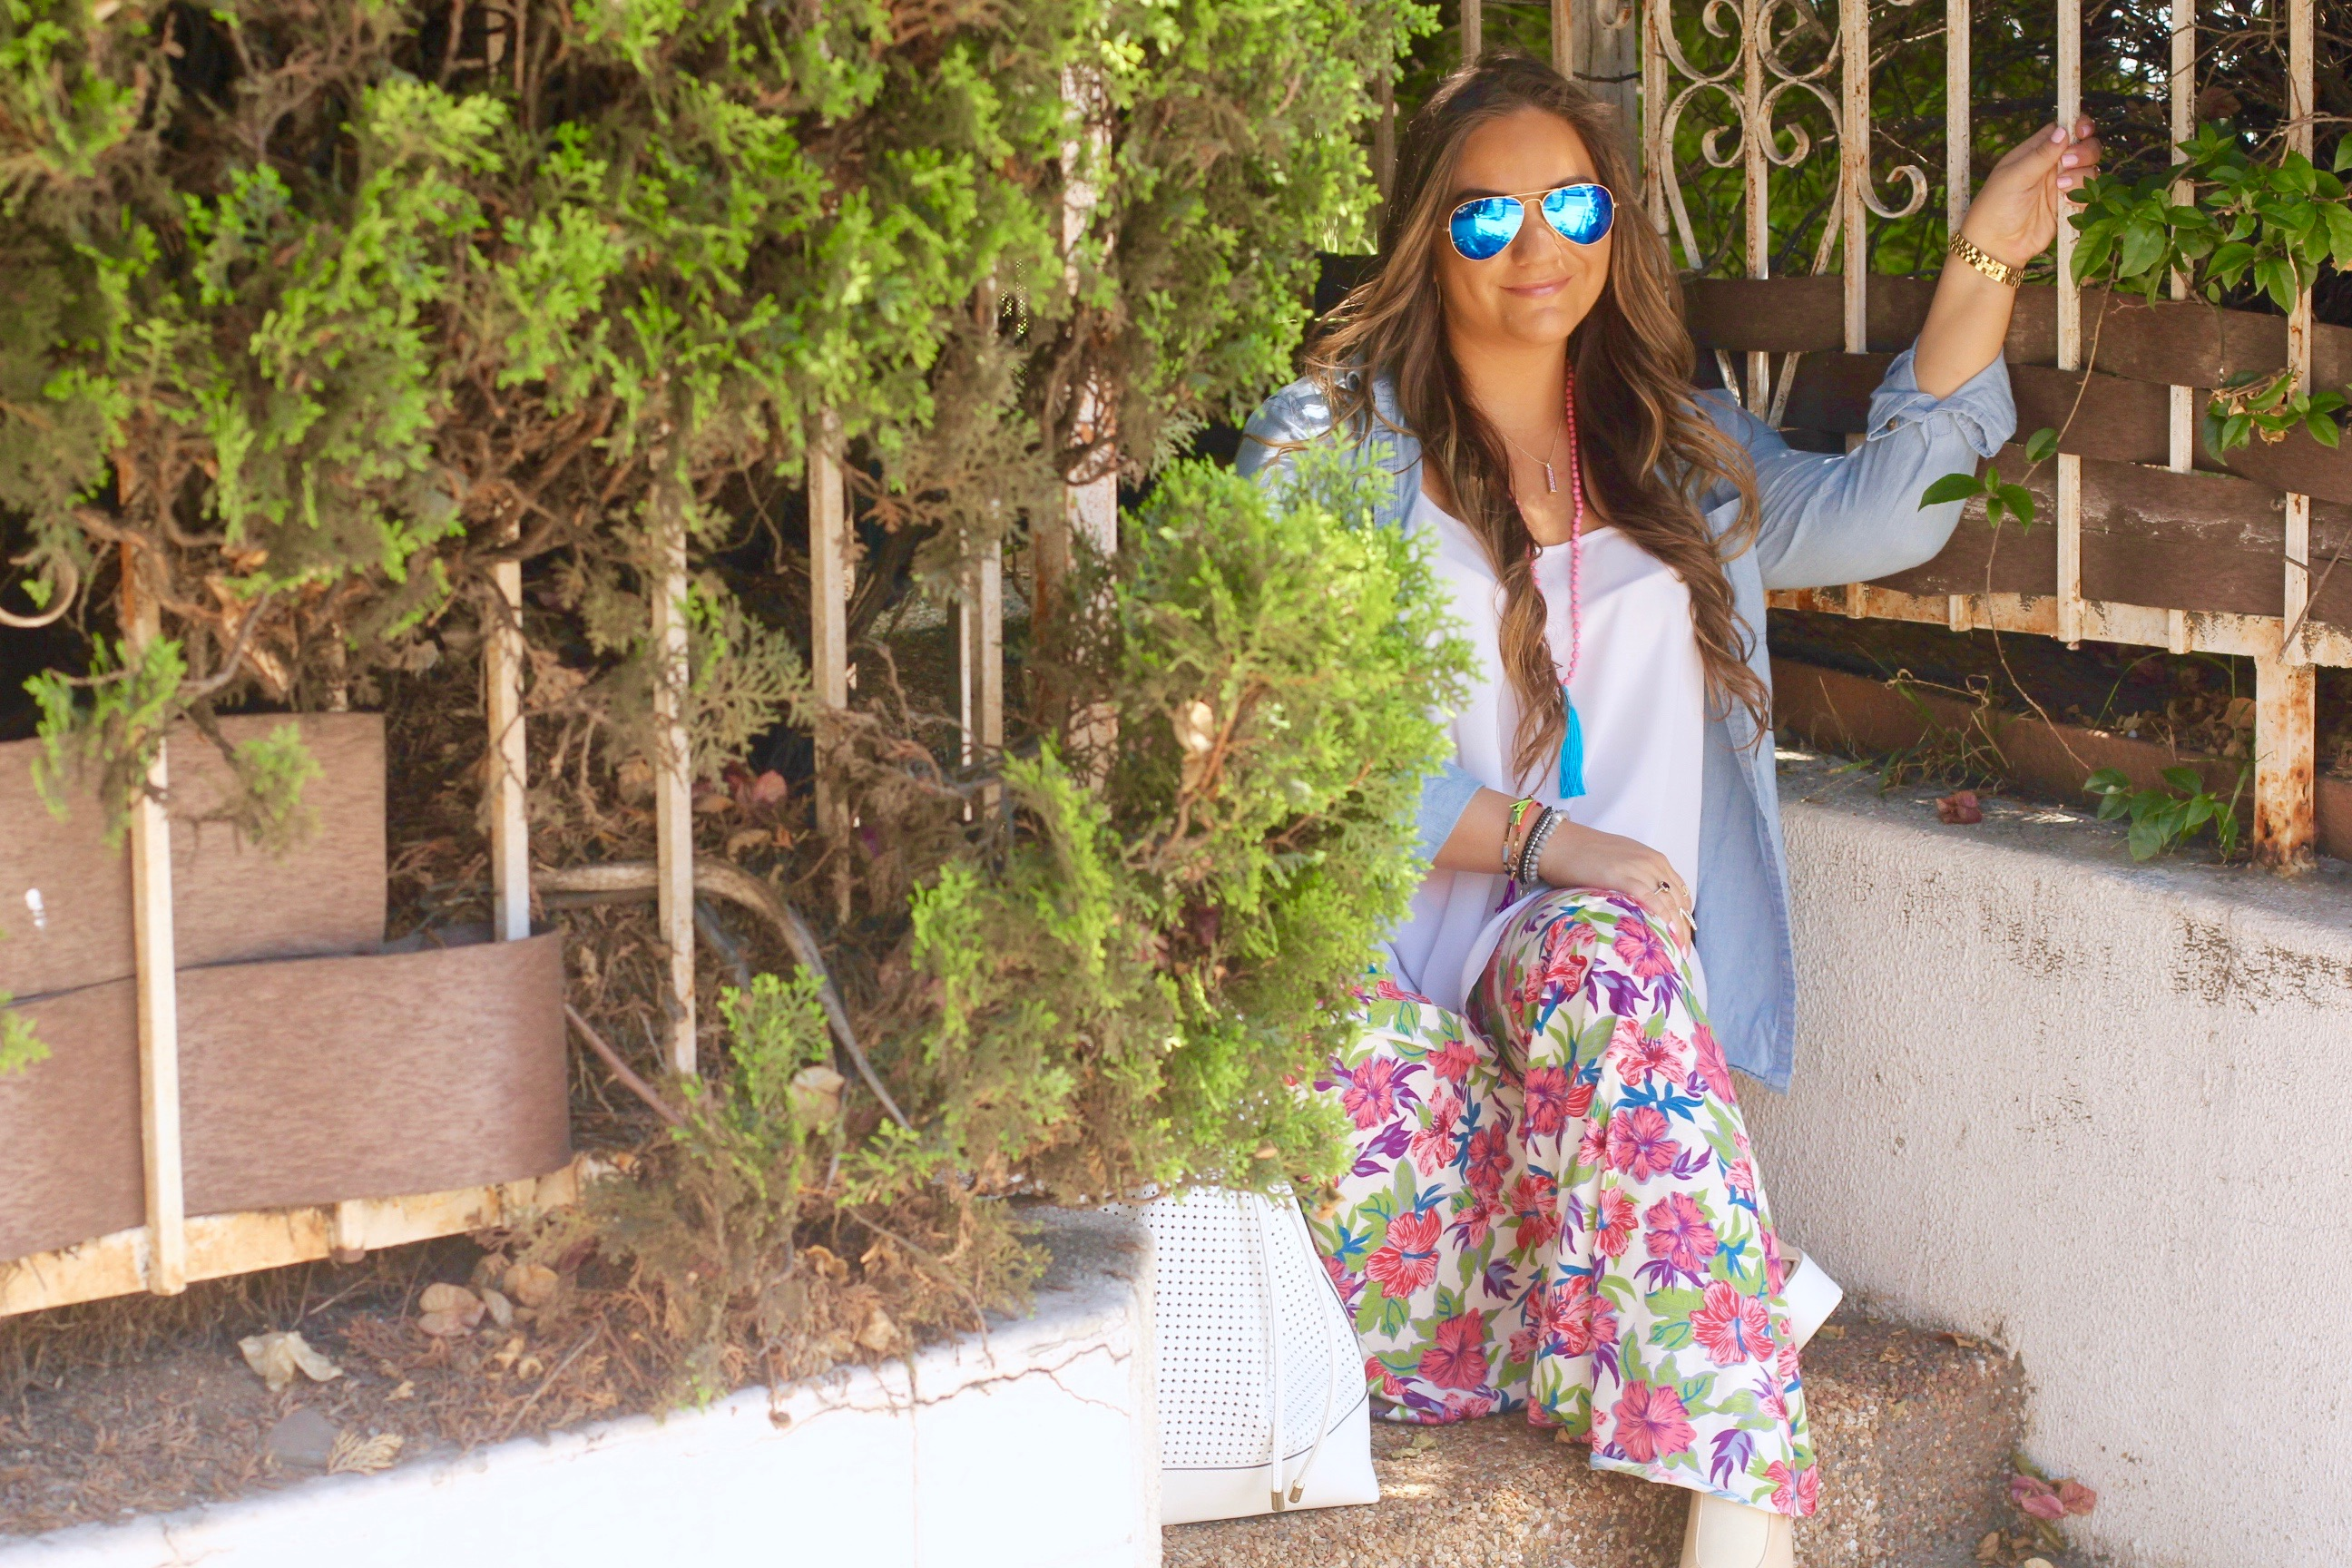 missyonmadison, melissa tierney, white bucket bag, vince camuto bucket bag, floral bell bottoms, floral pants, coachella style, coachella vibes, boho chic trends, tassel necklace, ray bans, sunglasses, ray bans, mirrored aviators, chambray shirt, button down chambray shirt, chambray shirt, white chiffon camisole, kohls, apt 9 georgette top, platform heels, ami clubwear,